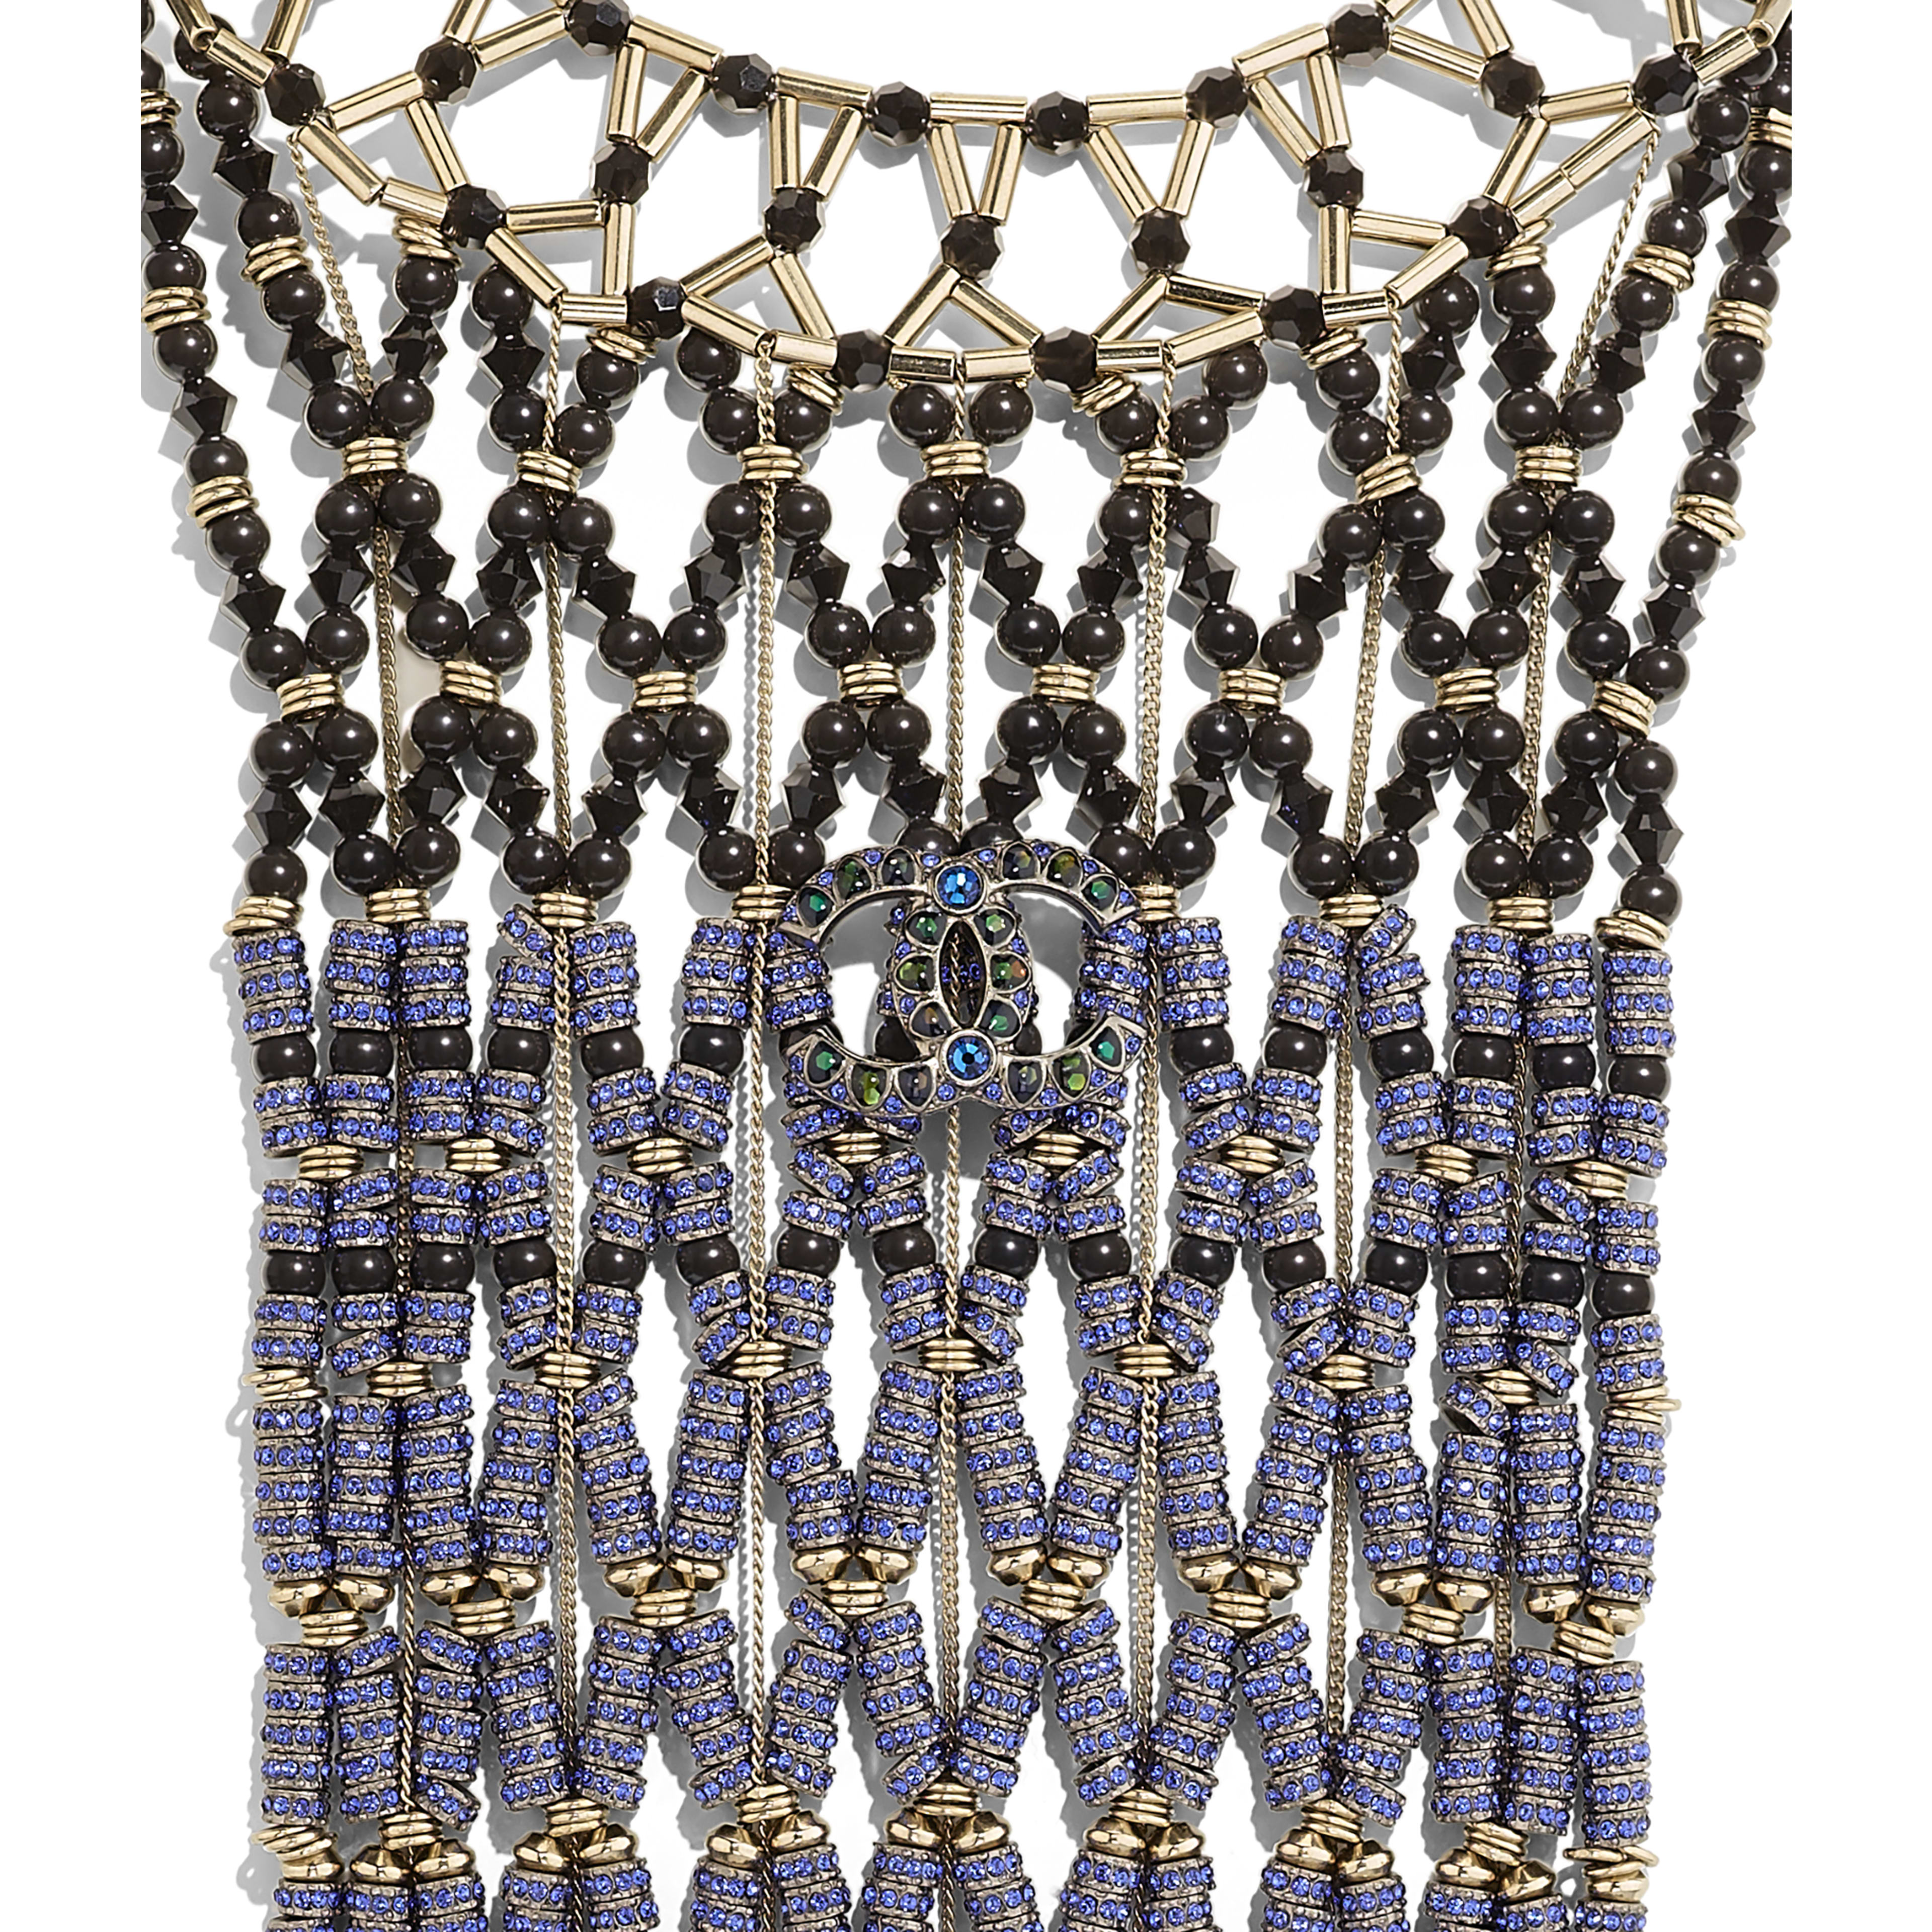 Necklace - Ruthenium, Gold, Black & Blue - Metal, Glass Pearls & Strass - Other view - see full sized version